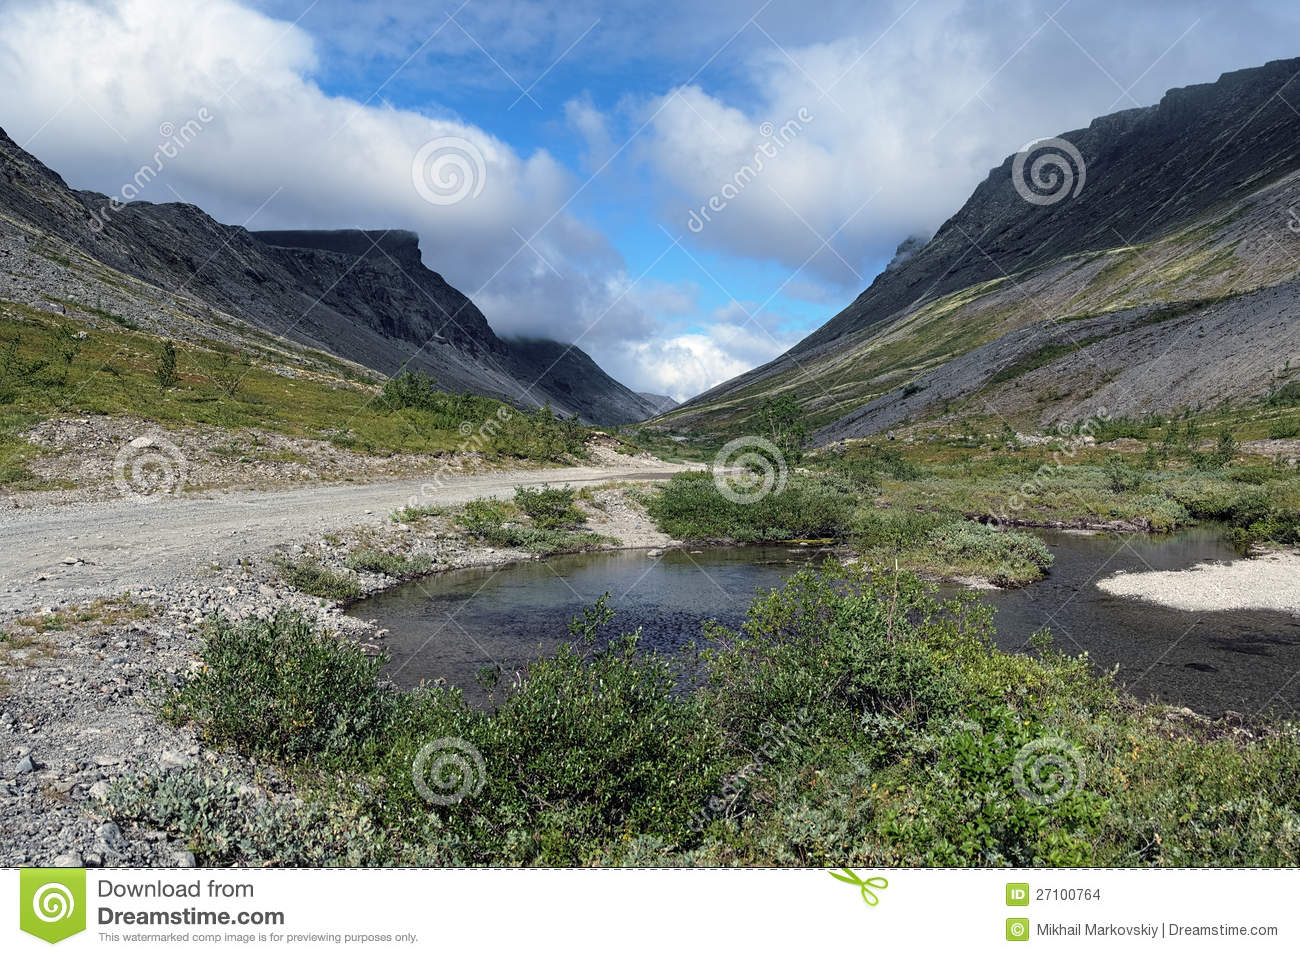 map of united states vector with Stock Images Vudyavrjok River Khibiny Mountains Russia Image27100764 on Stock Illustration Cute Manga Girl Emoticon Vector Design Image54790112 furthermore Stock Images Vudyavrjok River Khibiny Mountains Russia Image27100764 moreover Stock Image Kaizen D Red Quality Concept Image39251651 in addition Stock Photo Waste Open Burning Site Image Thilafushi Dumping Maldives Collection Plastic Area Image52445342 also Royalty Free Stock Photos Workforce Image3133158.